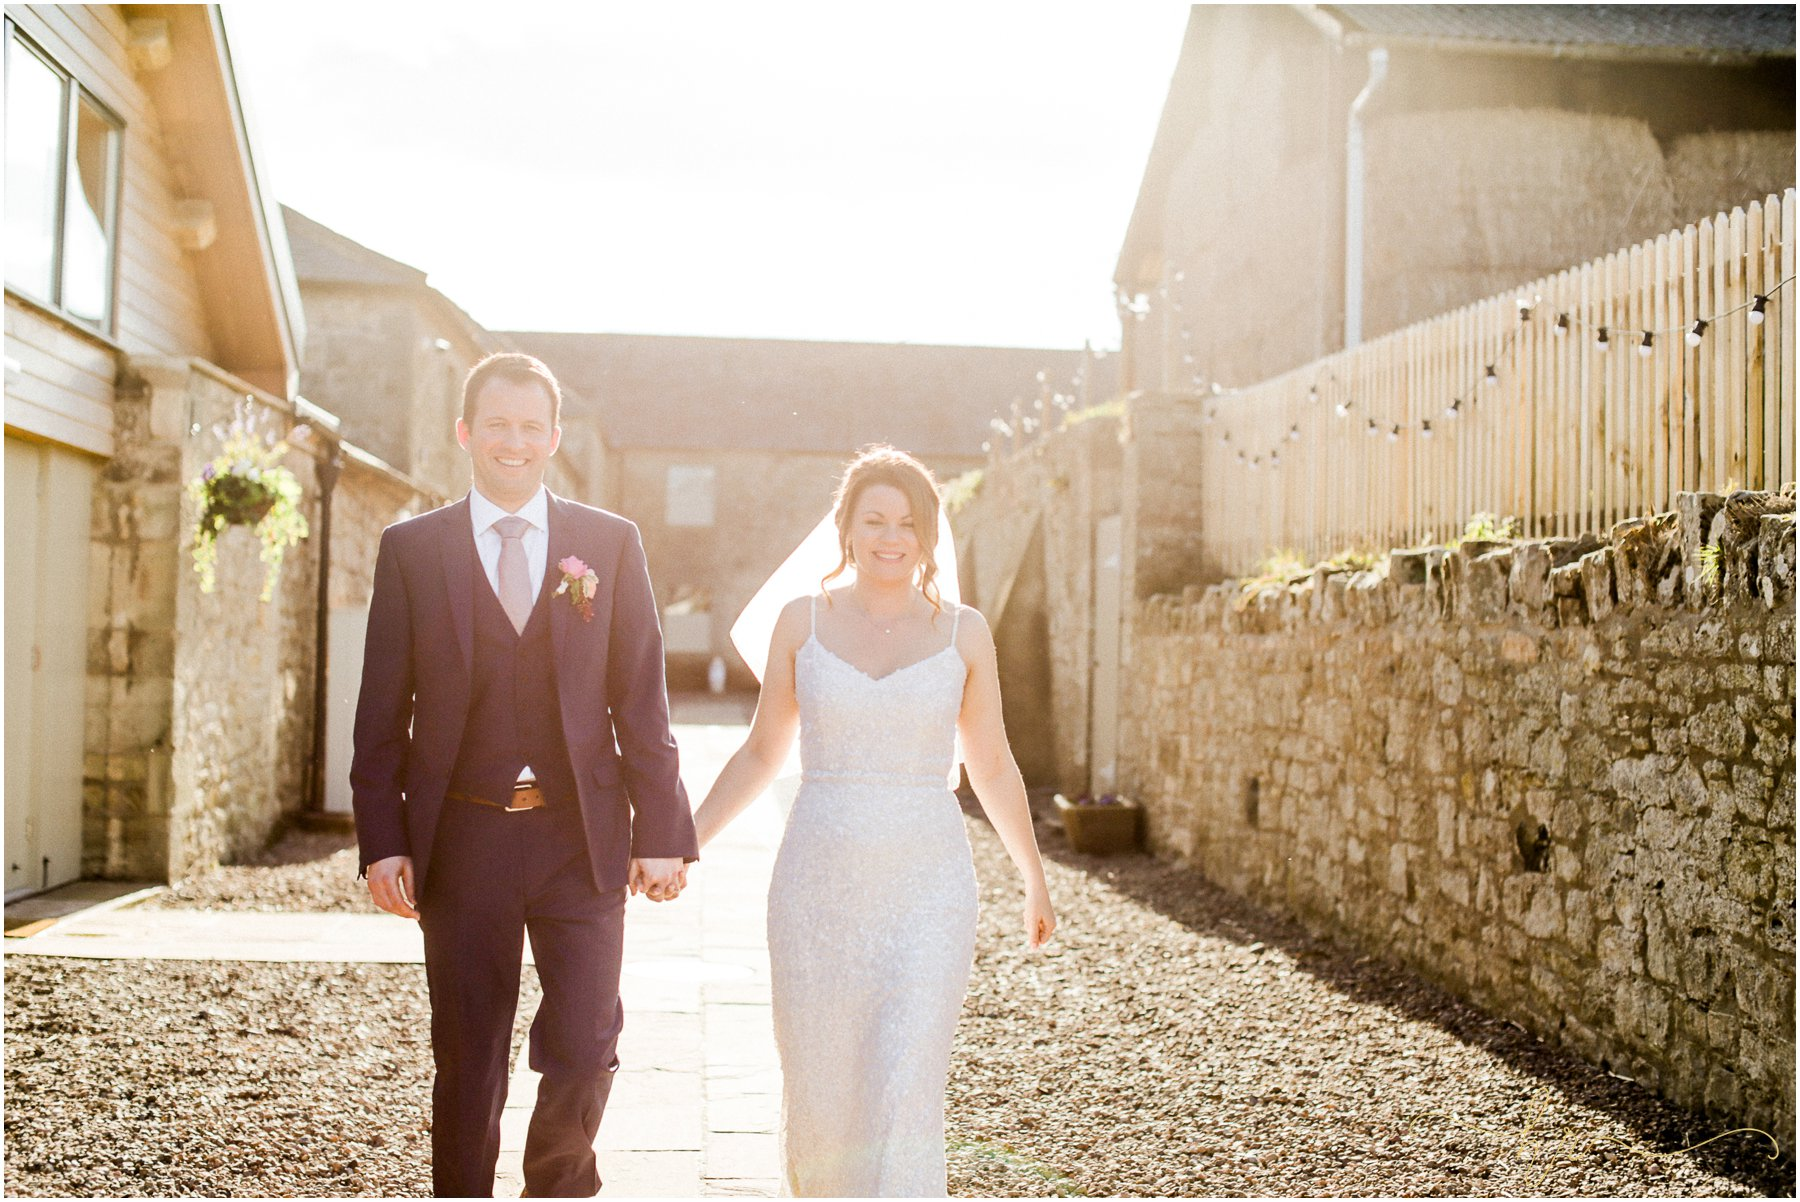 Doxford-Barn-Wedding-Photography_0368